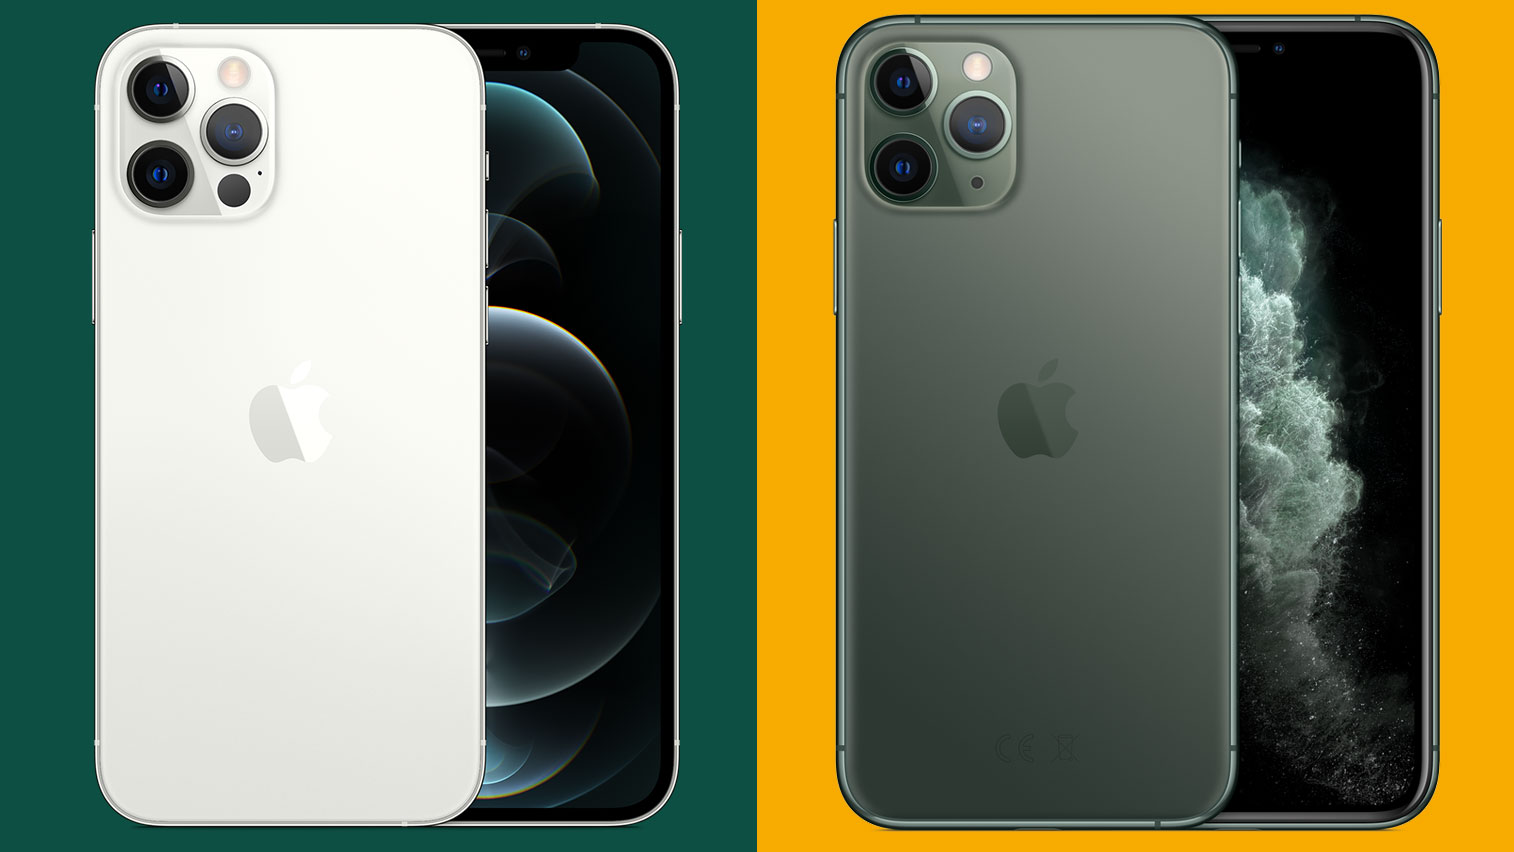 iPhone 12 Pro vs iPhone 11 Pro: what are the key differences? thumbnail